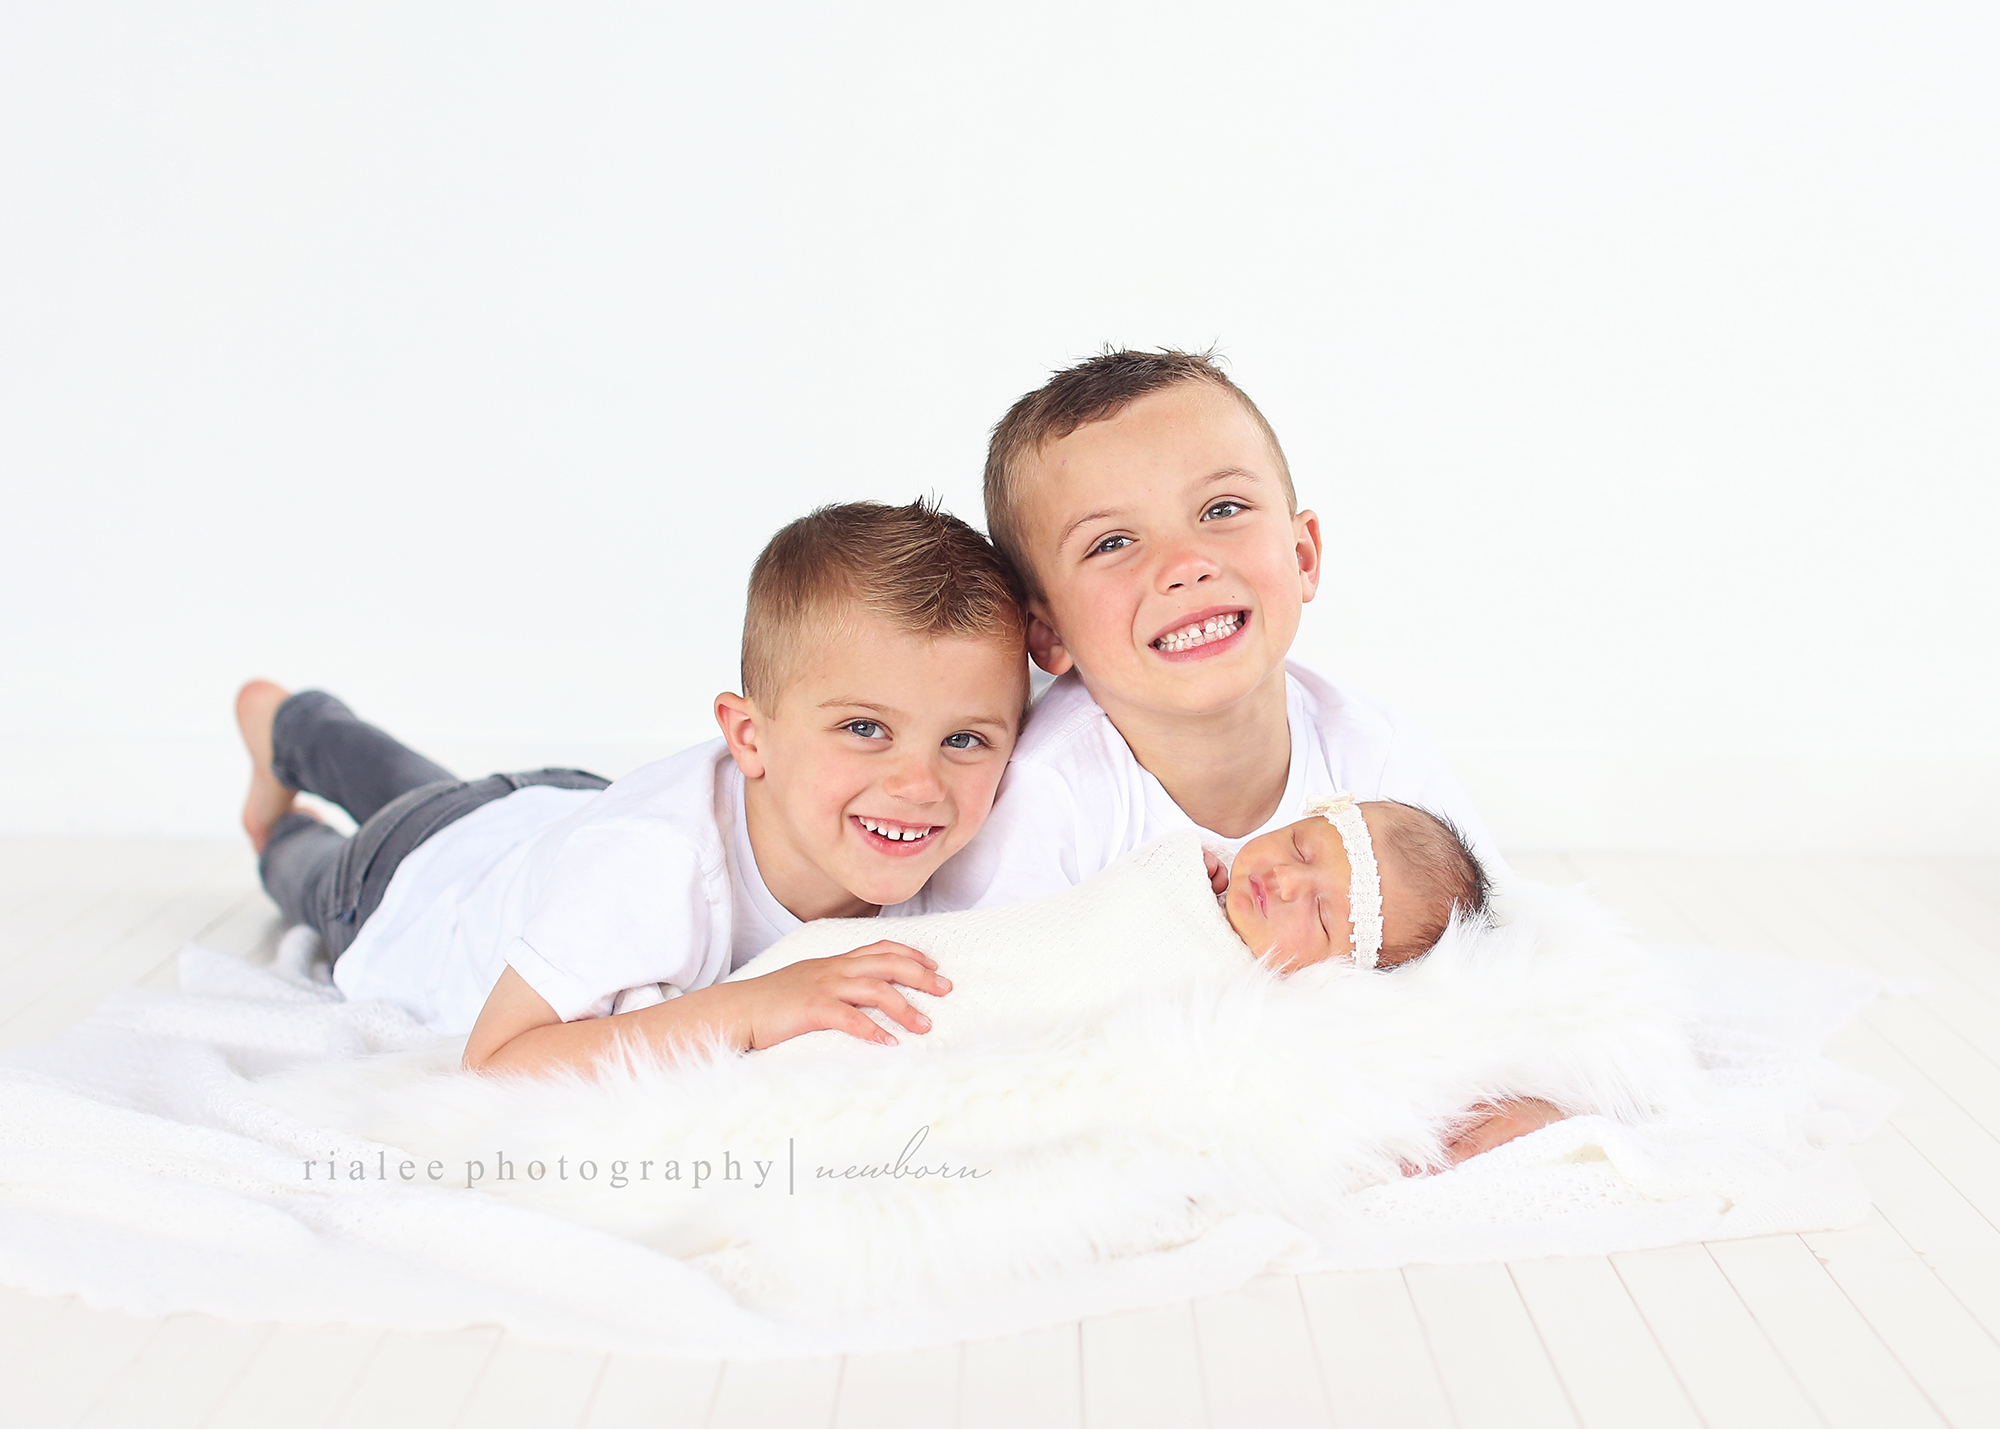 siblingnewbornphotos.jpg